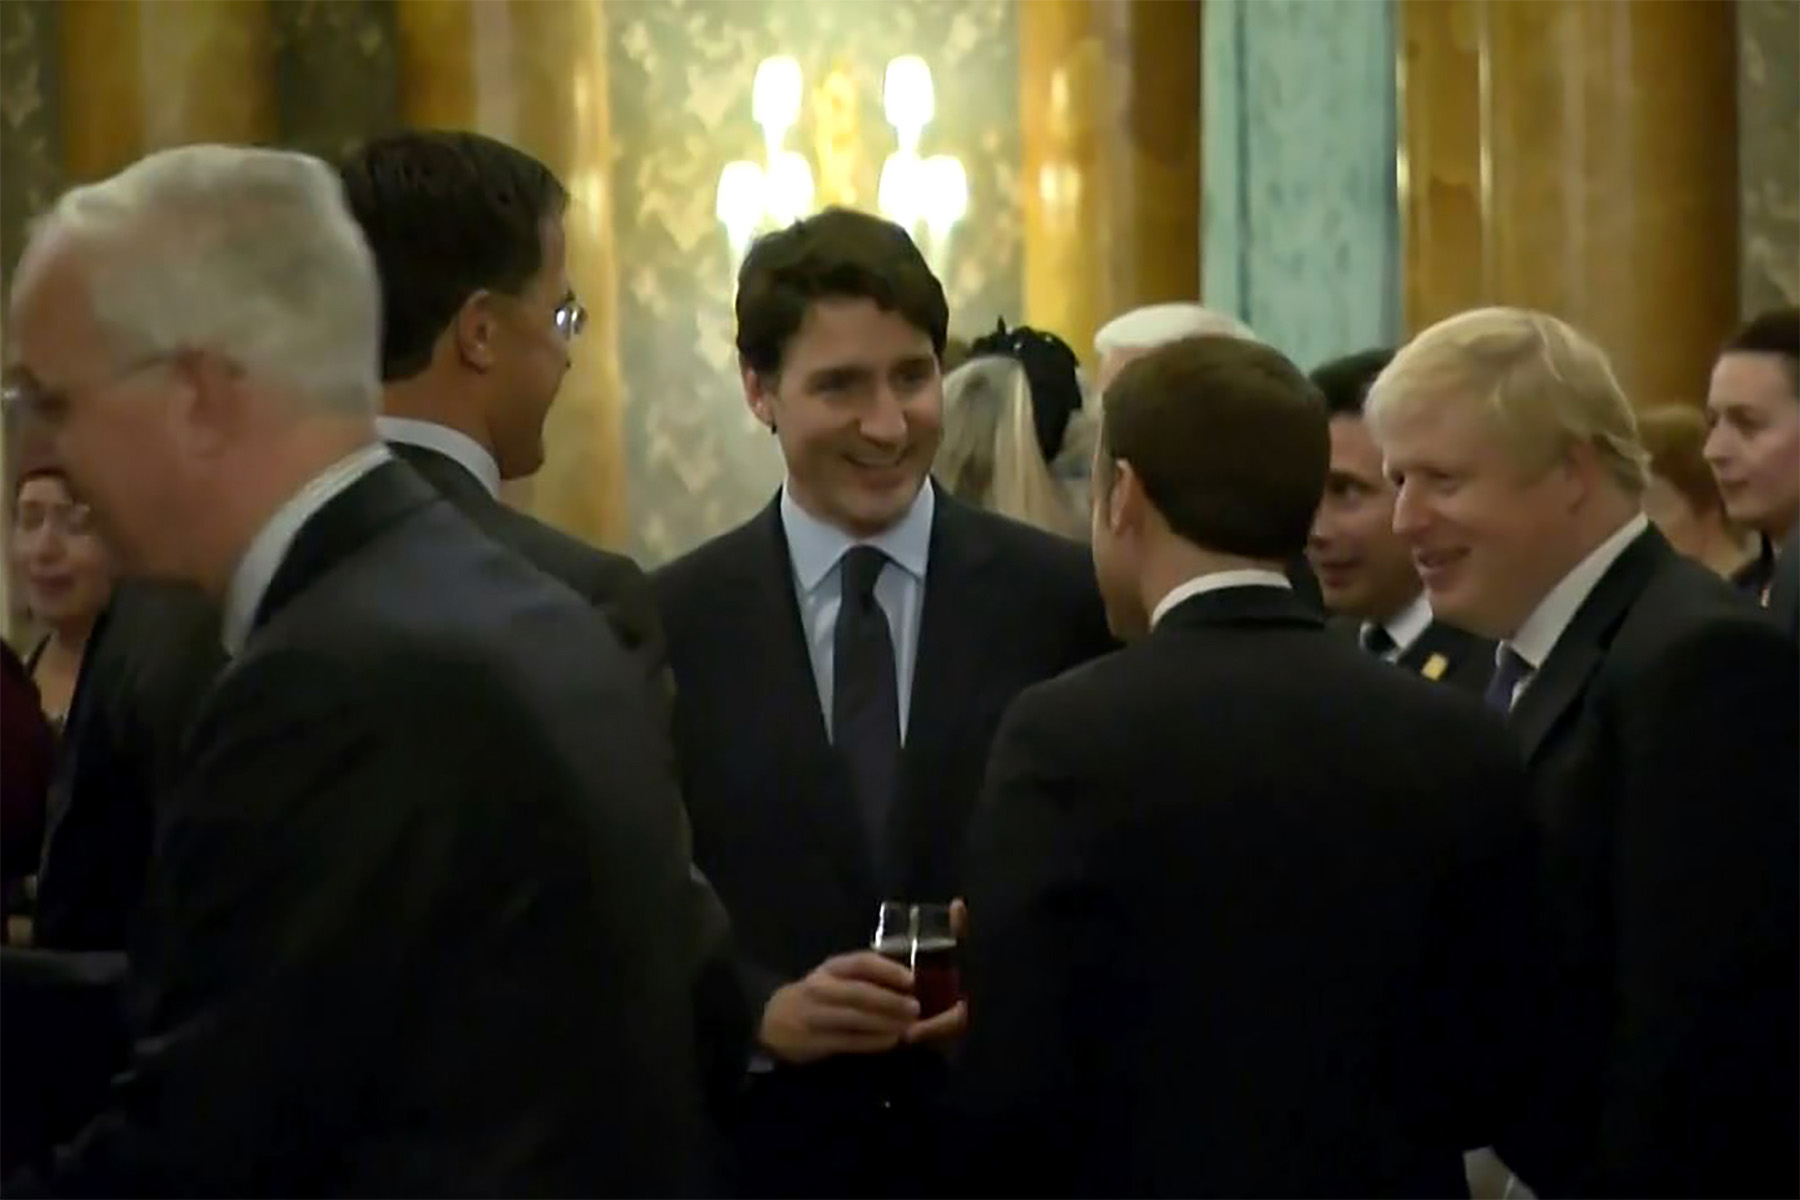 In this grab made from video, Canada's Prime Minister Justin Trudeau  speaks with Dutch Prime Minister Mark Rutte, left, French President Emmanuel Macron, second from right, andBritish Prime Minister Boris Johnson, right, during an event at a Buckingham Palace on December 3. Photo: NATO TV/AFP via Getty Images